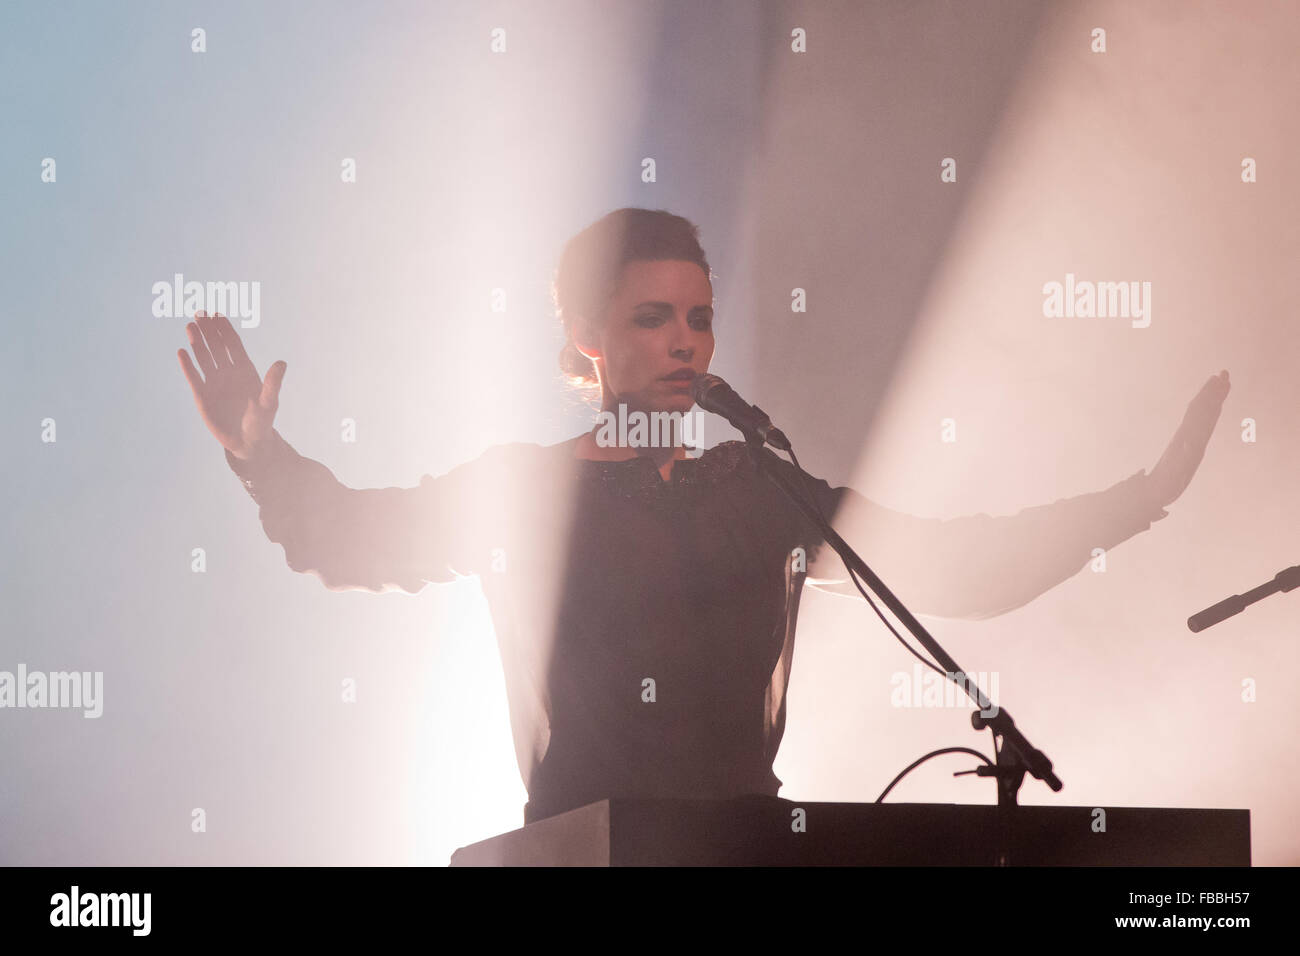 Mina Spiler (vocals and synthesizer) from the Slovenian band Laibach stands on stage in Nuremberg, Germany, 13 January - Stock Image